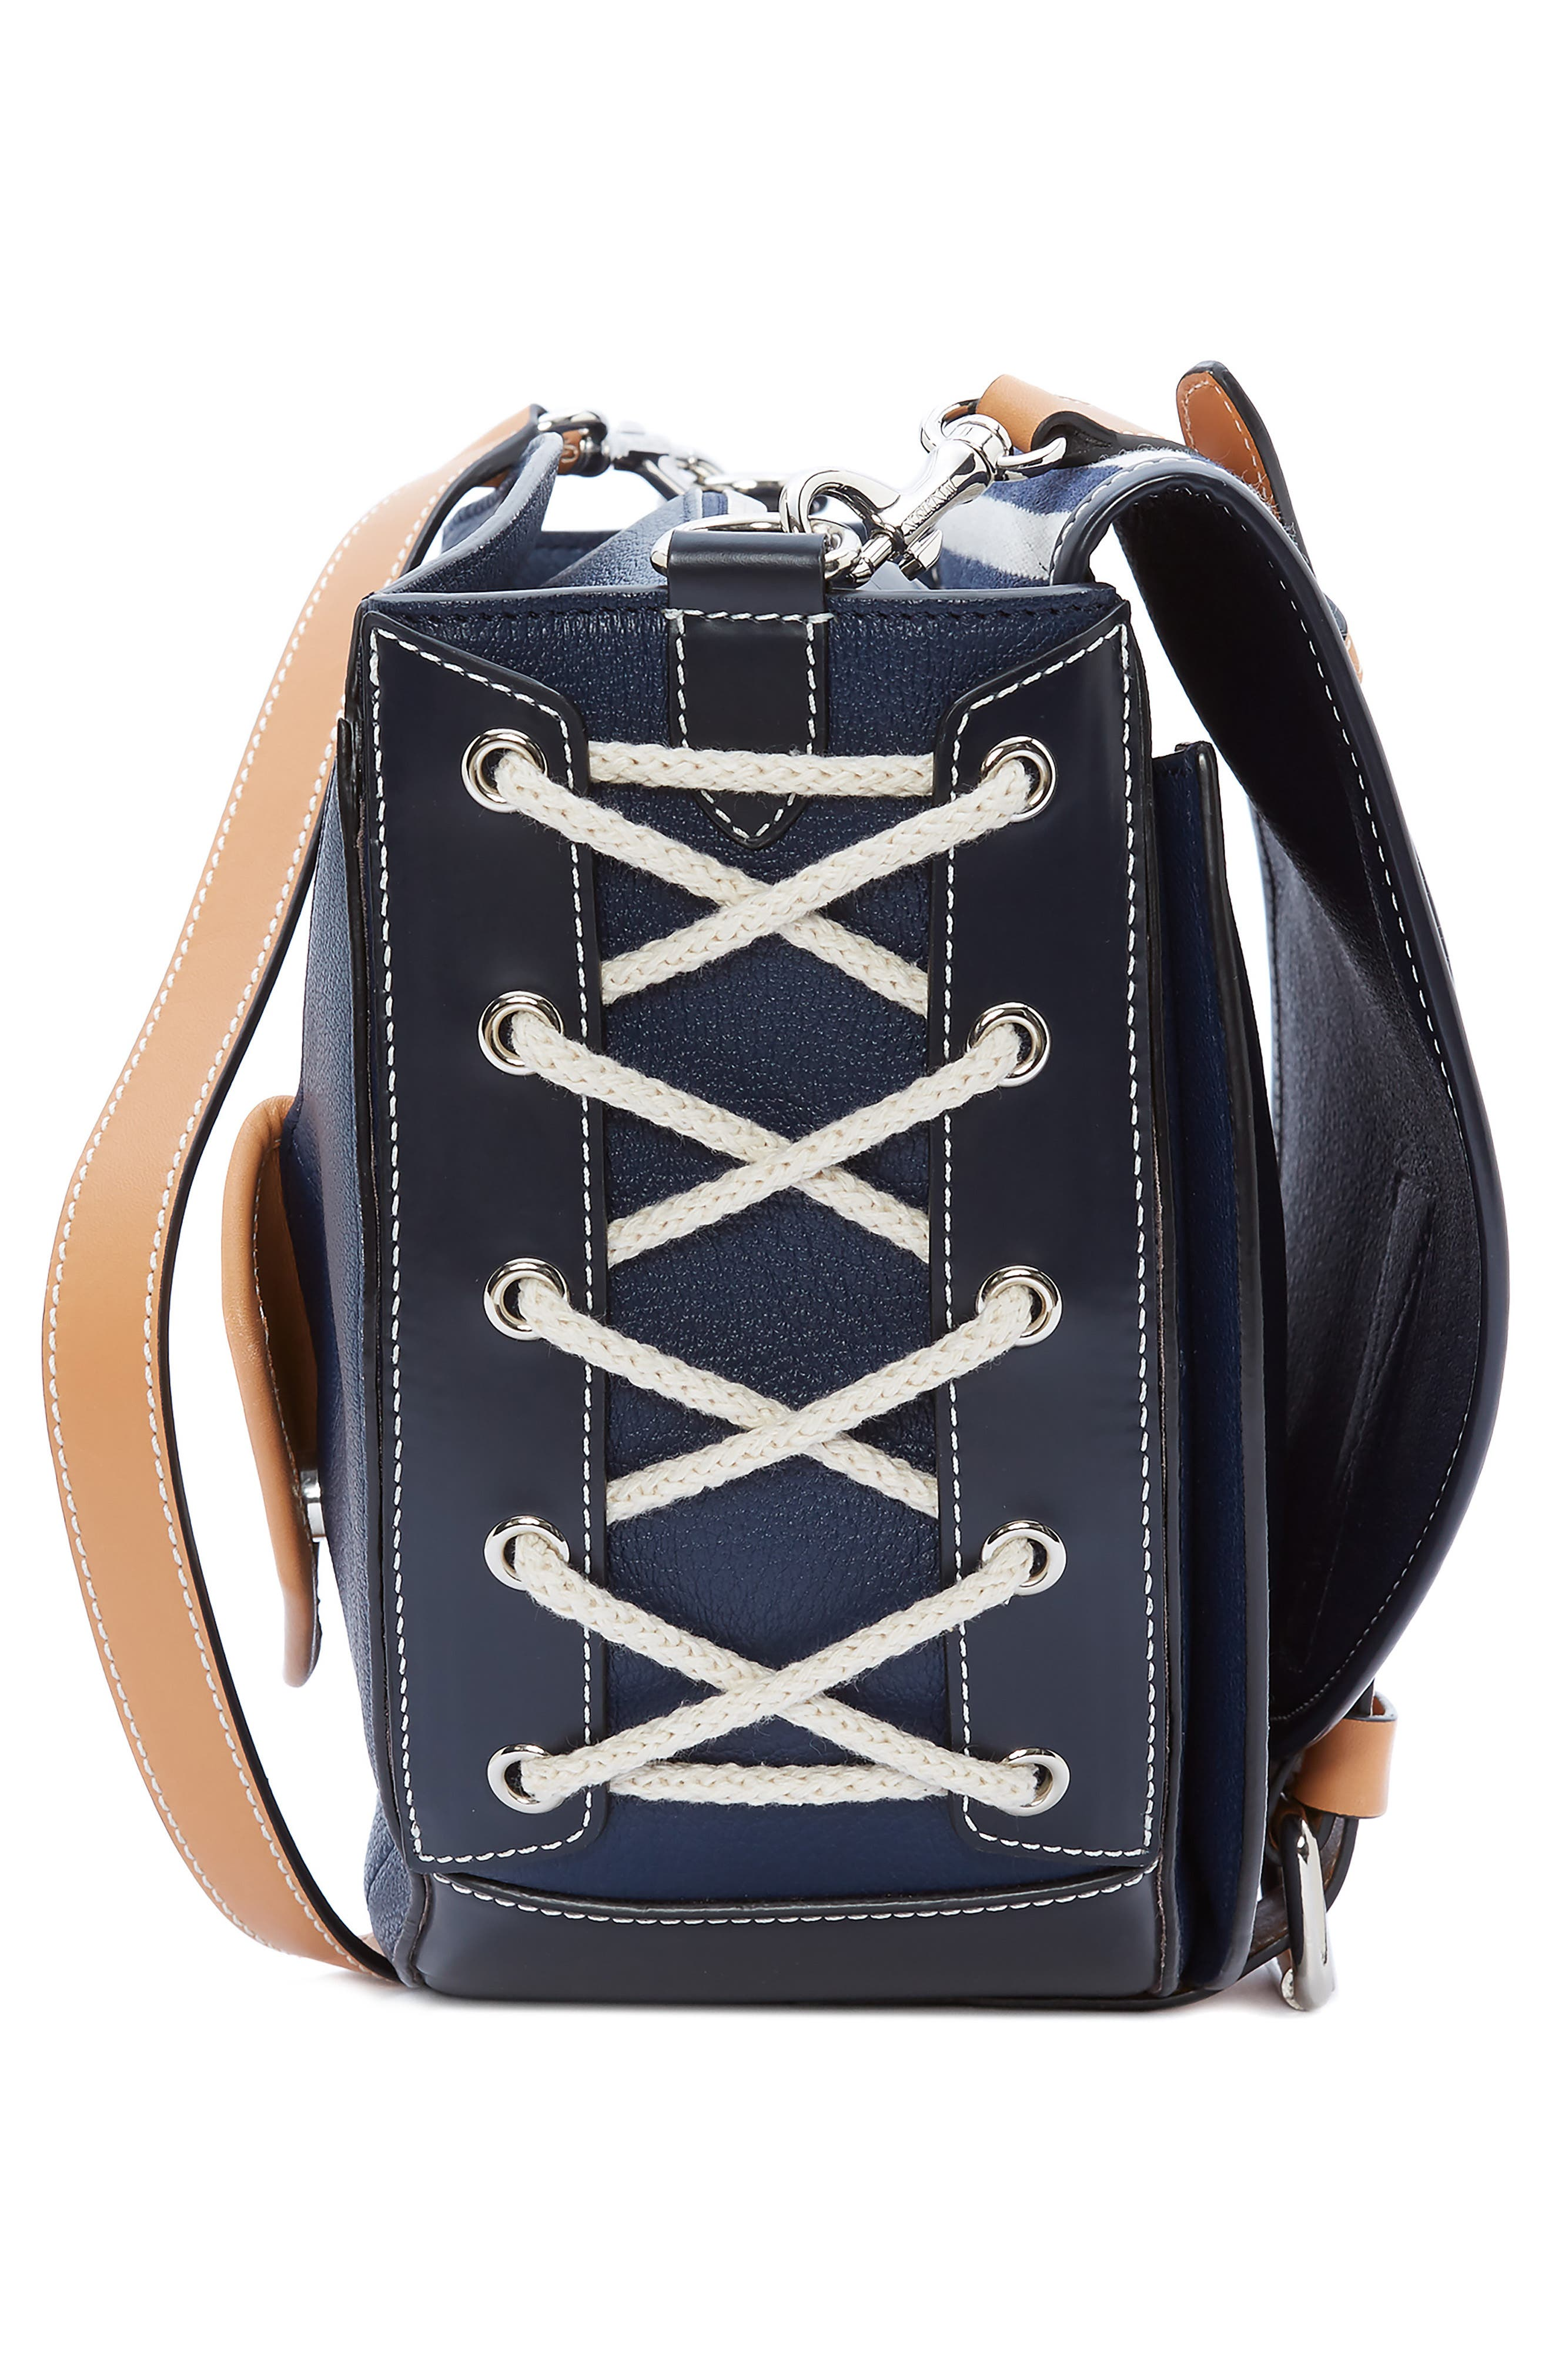 JW ANDERSON,                             Small Bike Leather & Canvas Crossbody Bag,                             Alternate thumbnail 4, color,                             NAVY BRETON